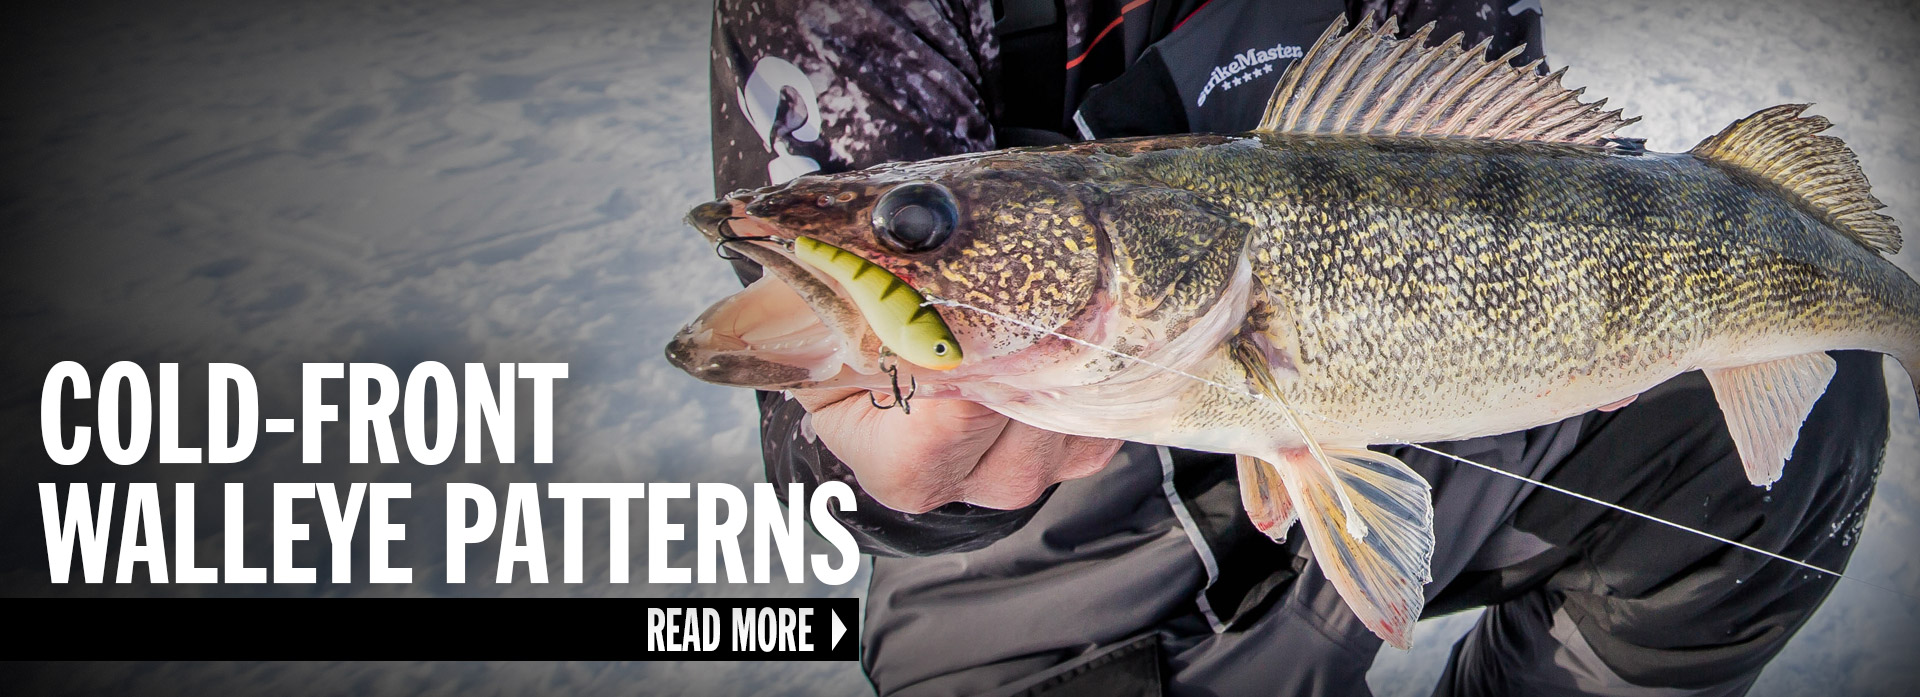 Cold-Front Walleye Patterns